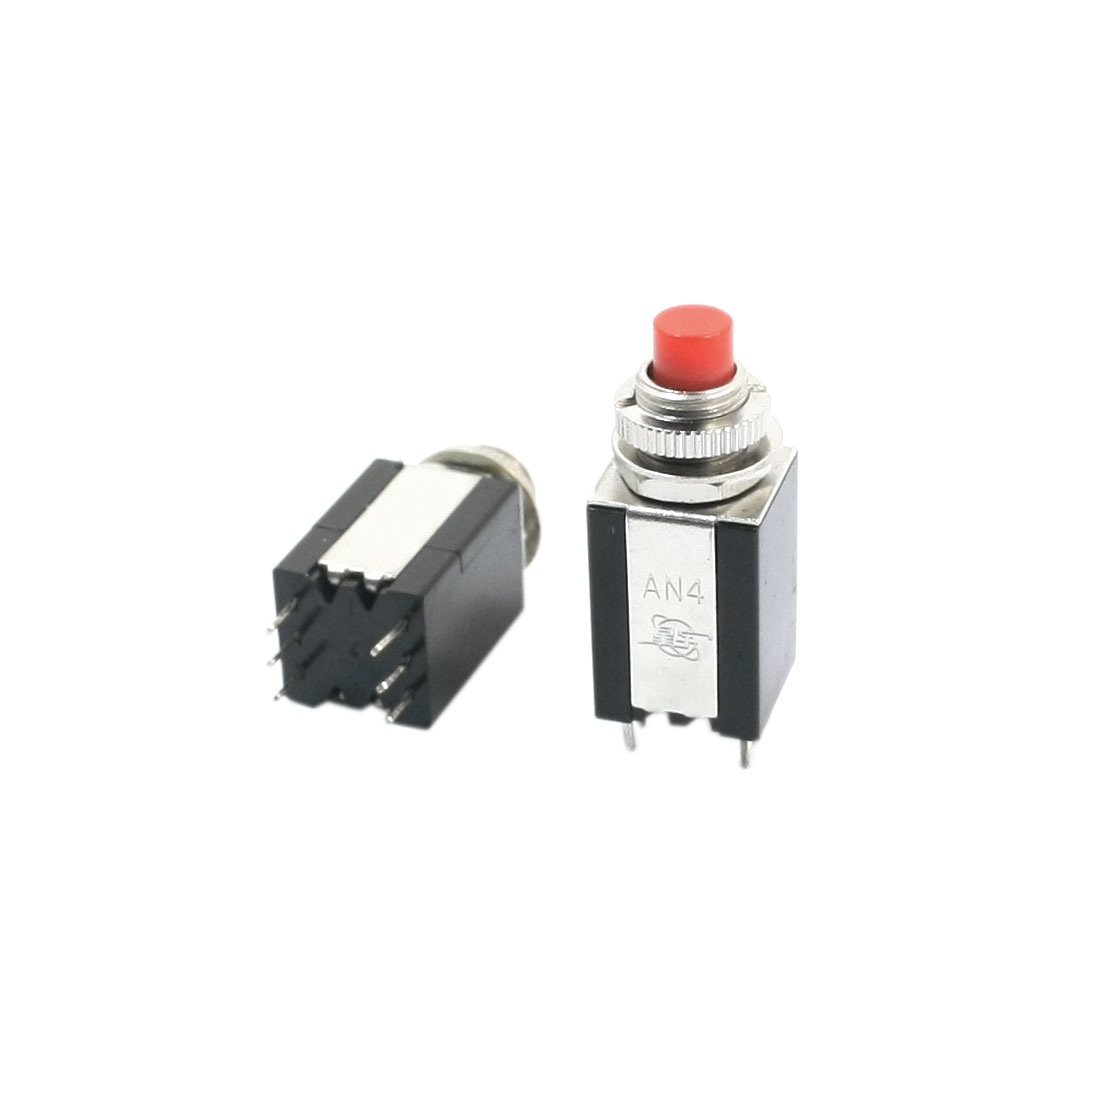 2Pcs AC250V 3A 8mm Mount Dia DPDT White Button Mini Toggle Switches